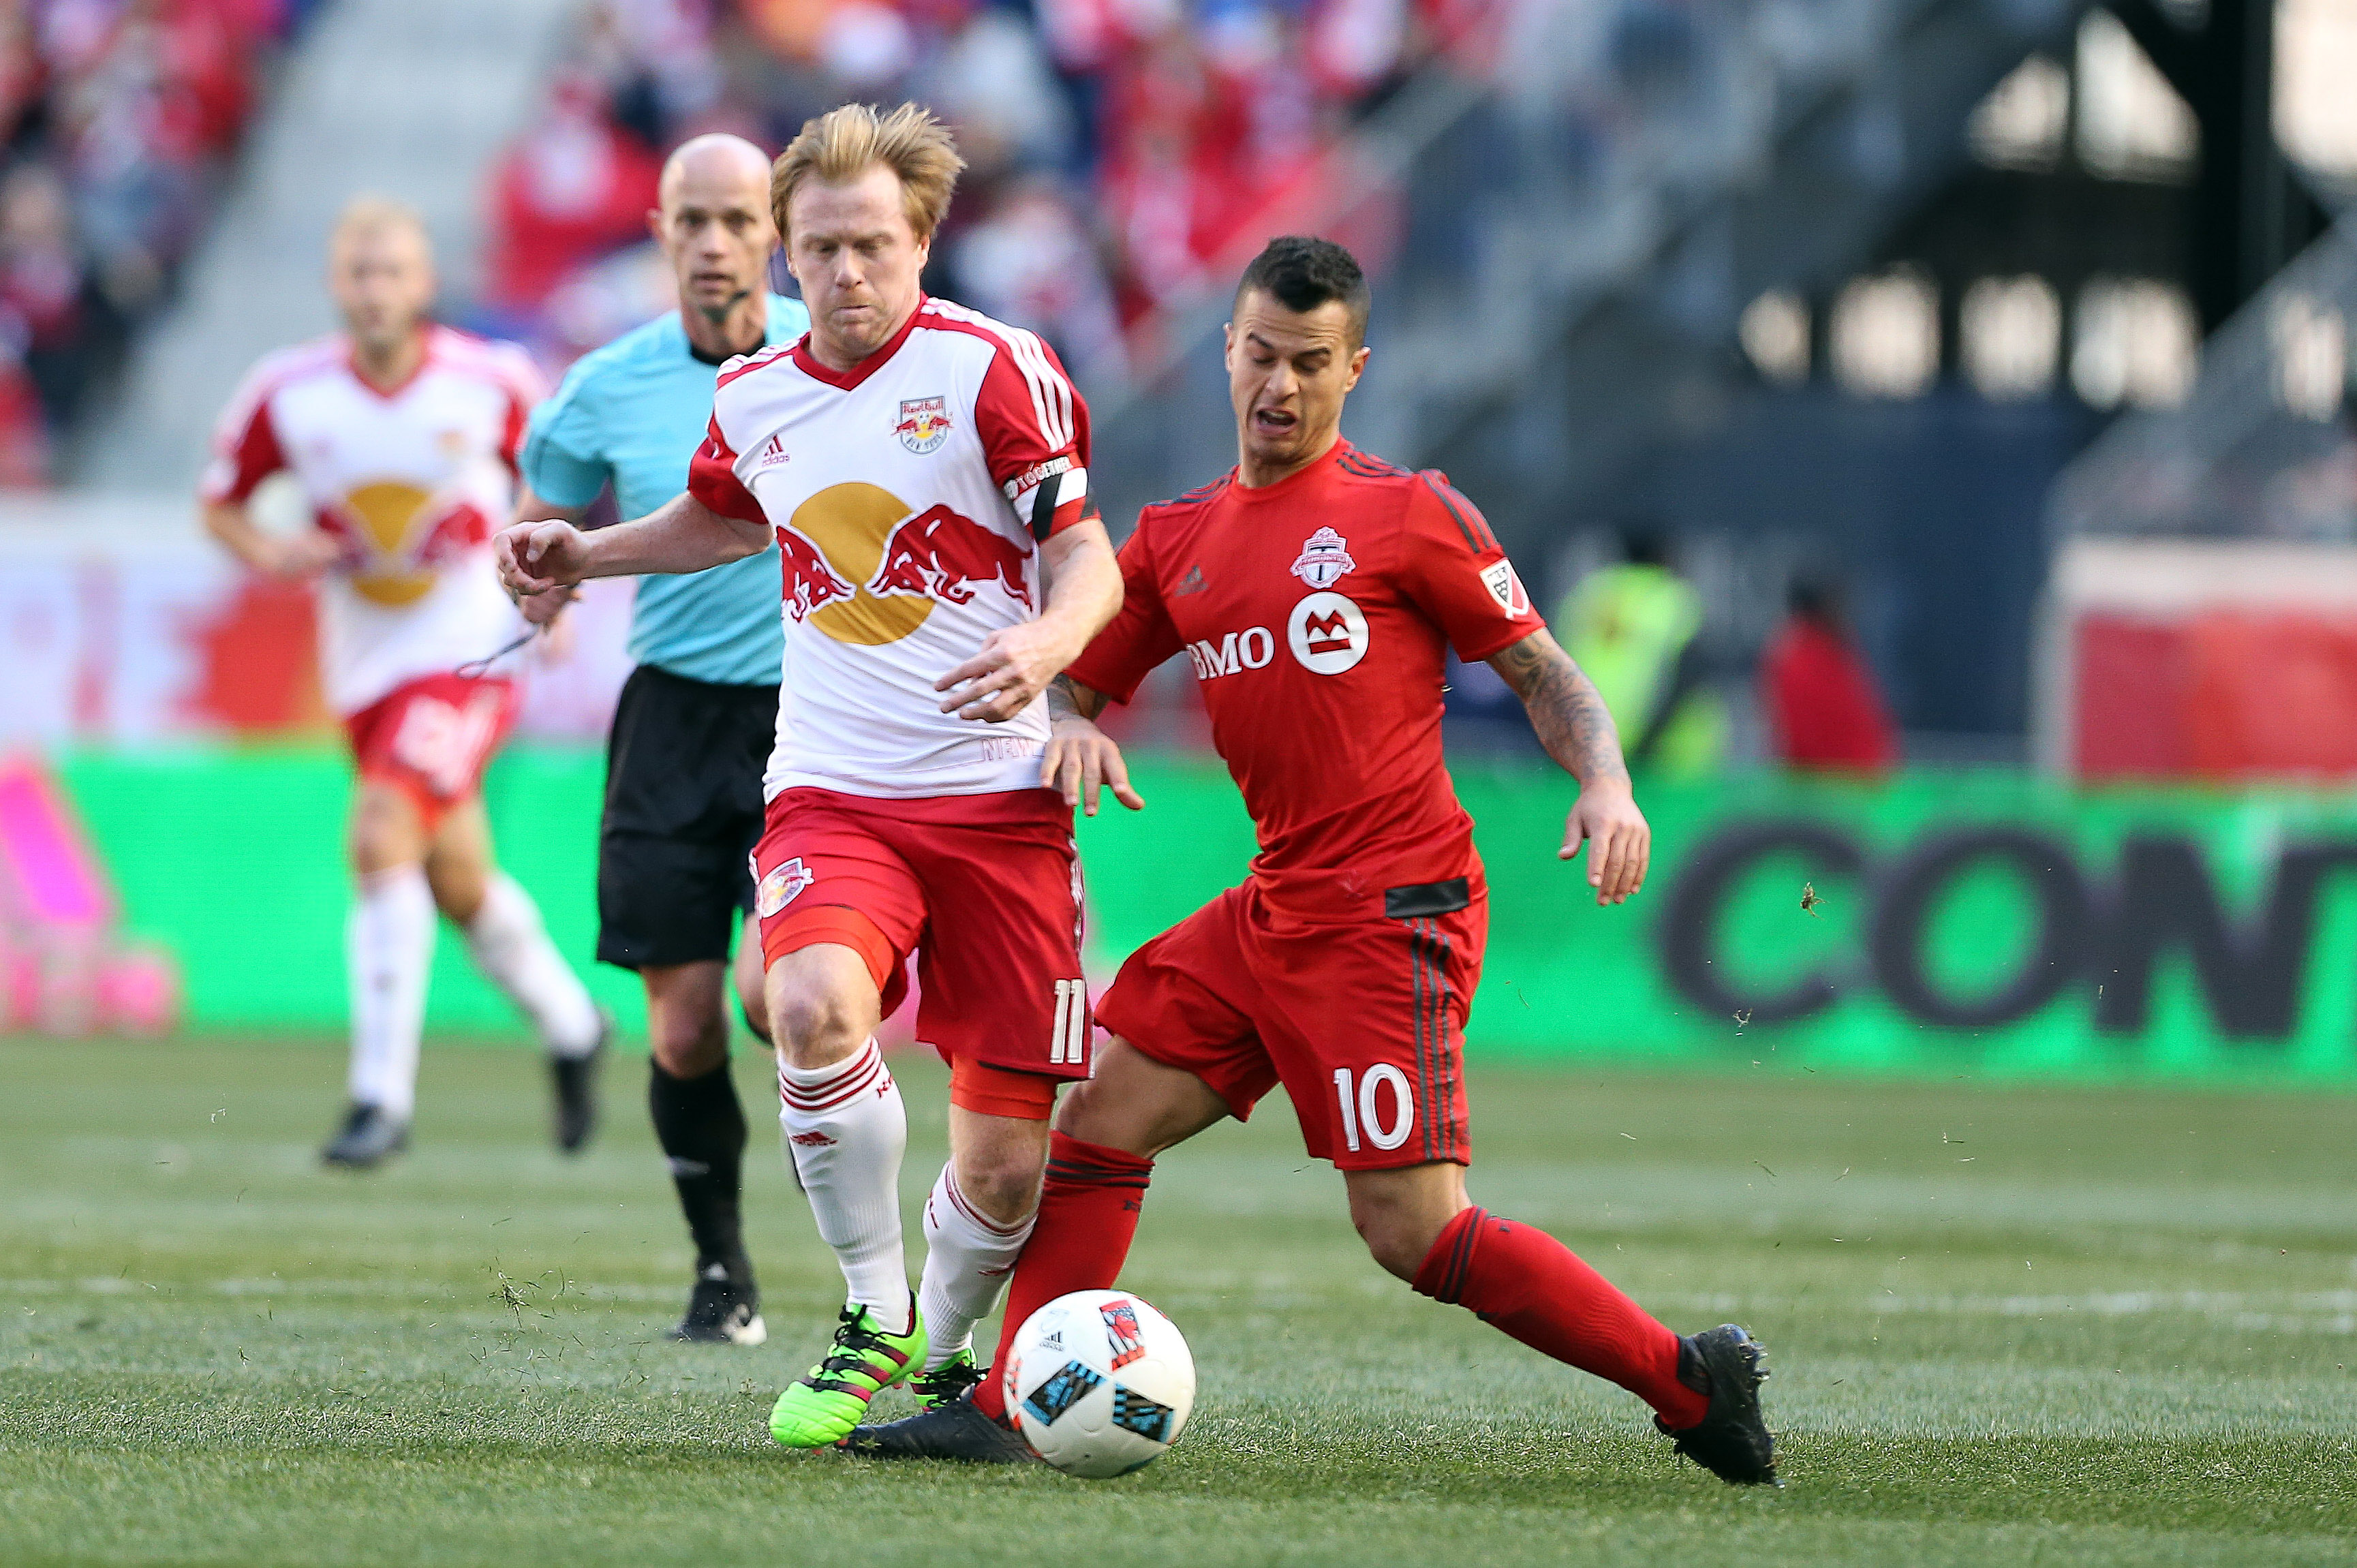 Dax McCarty (left) fighting for a loose ball with Sebastian Giovinco in the Red Bulls' 2-0 loss to Toronto FC on March 6th at Red Bull Arena.